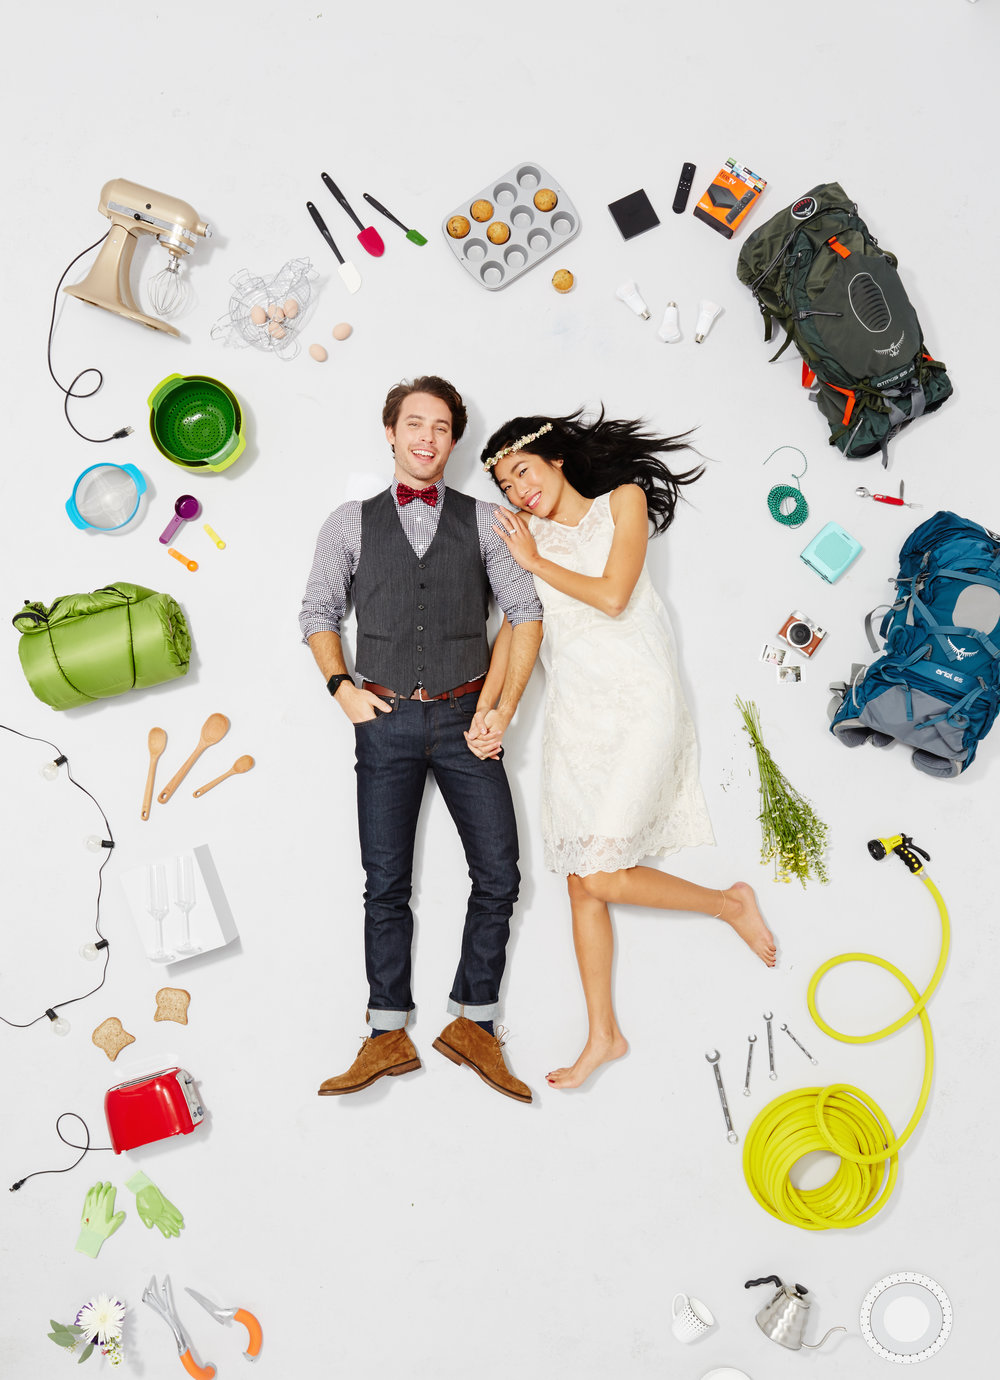 Amazon Wedding Giveaway $5000 -- Best Wedding Registries -- Amazon Wedding Registry